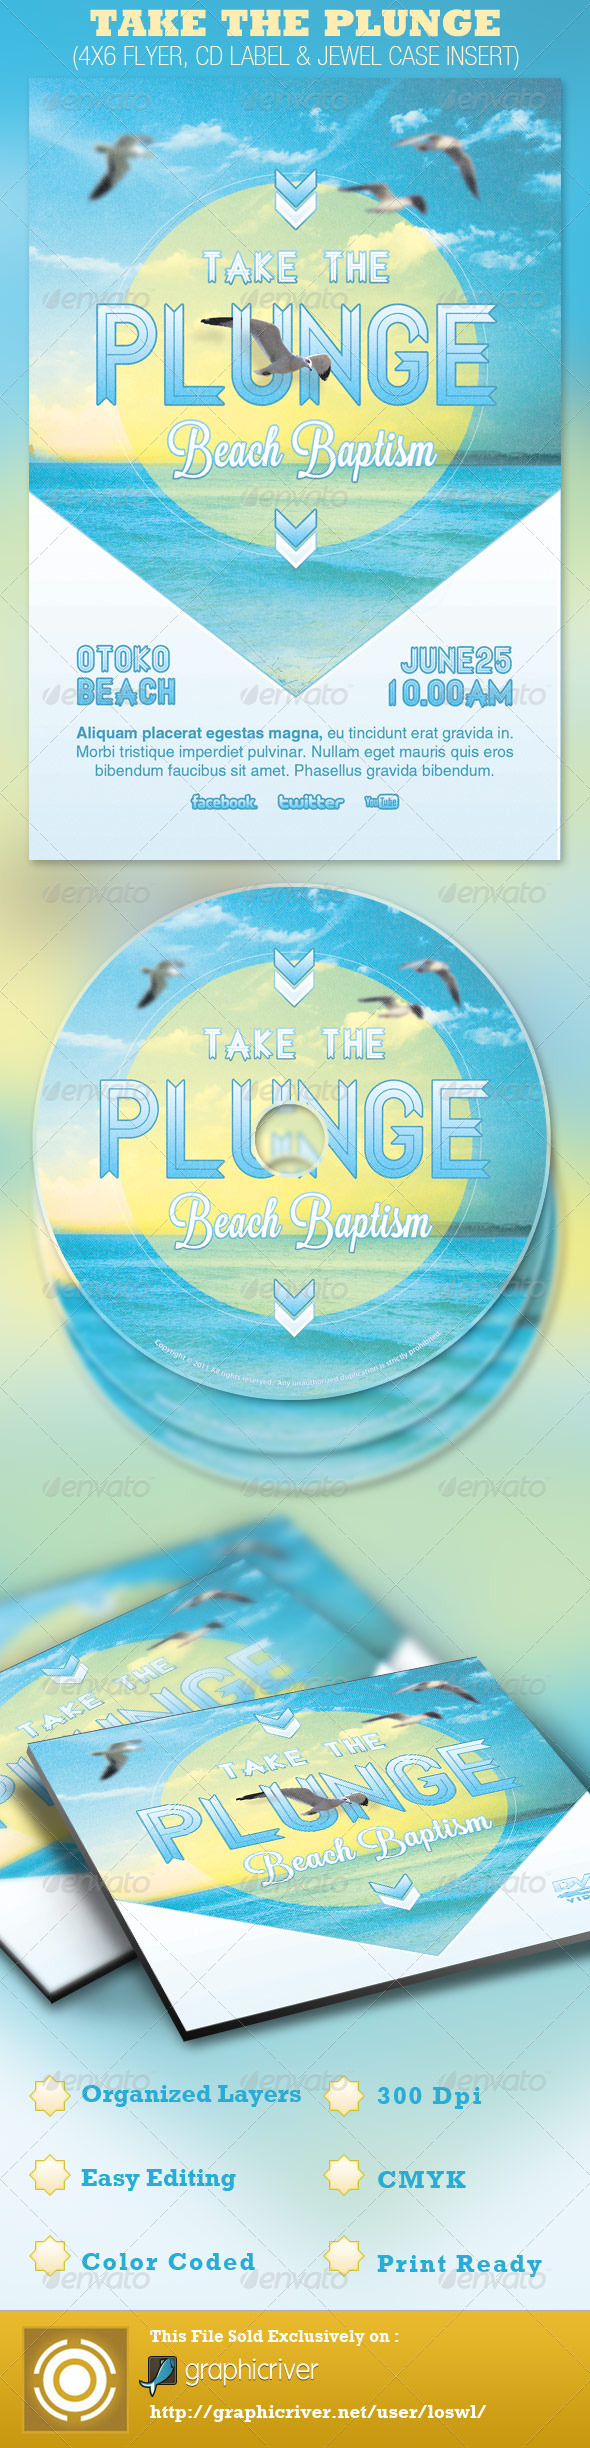 Take the Plunge Church Flyer and CD Template